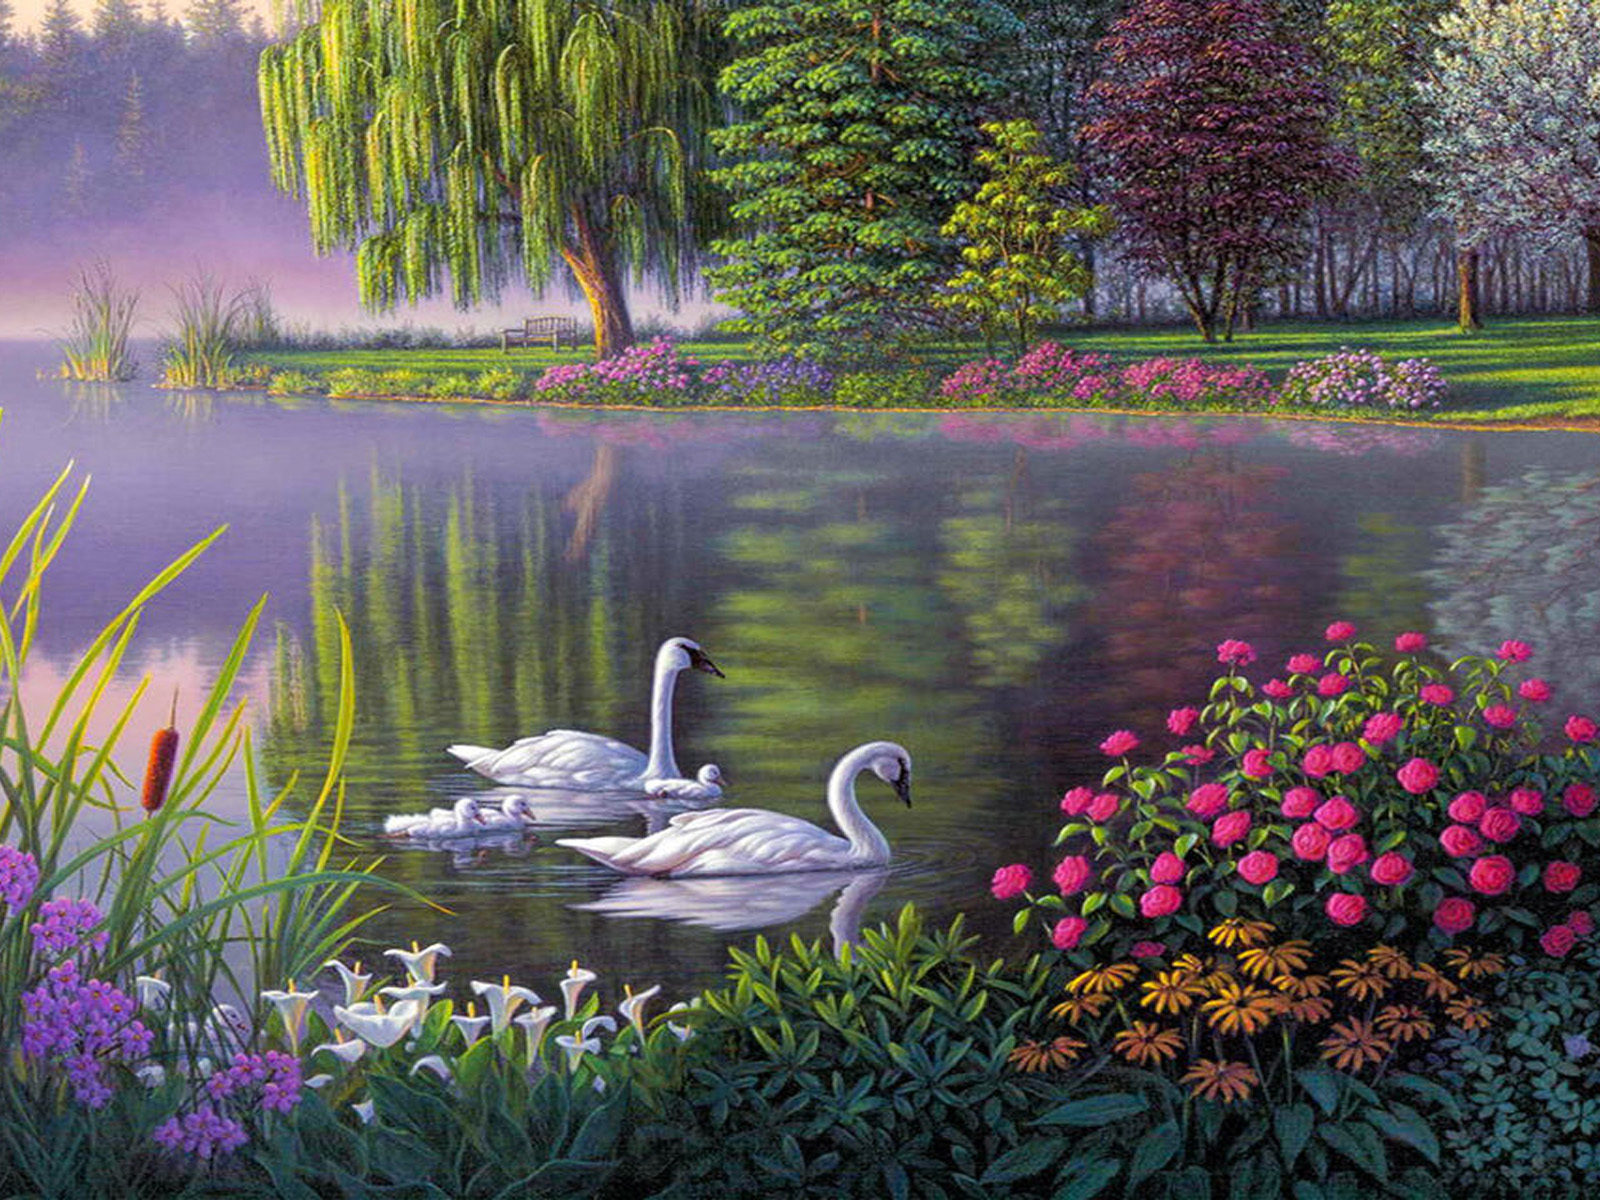 Fantasy Girl Wallpaper Hd Landscape Swan Lake Trees Flowers Art Wallpaper Hd